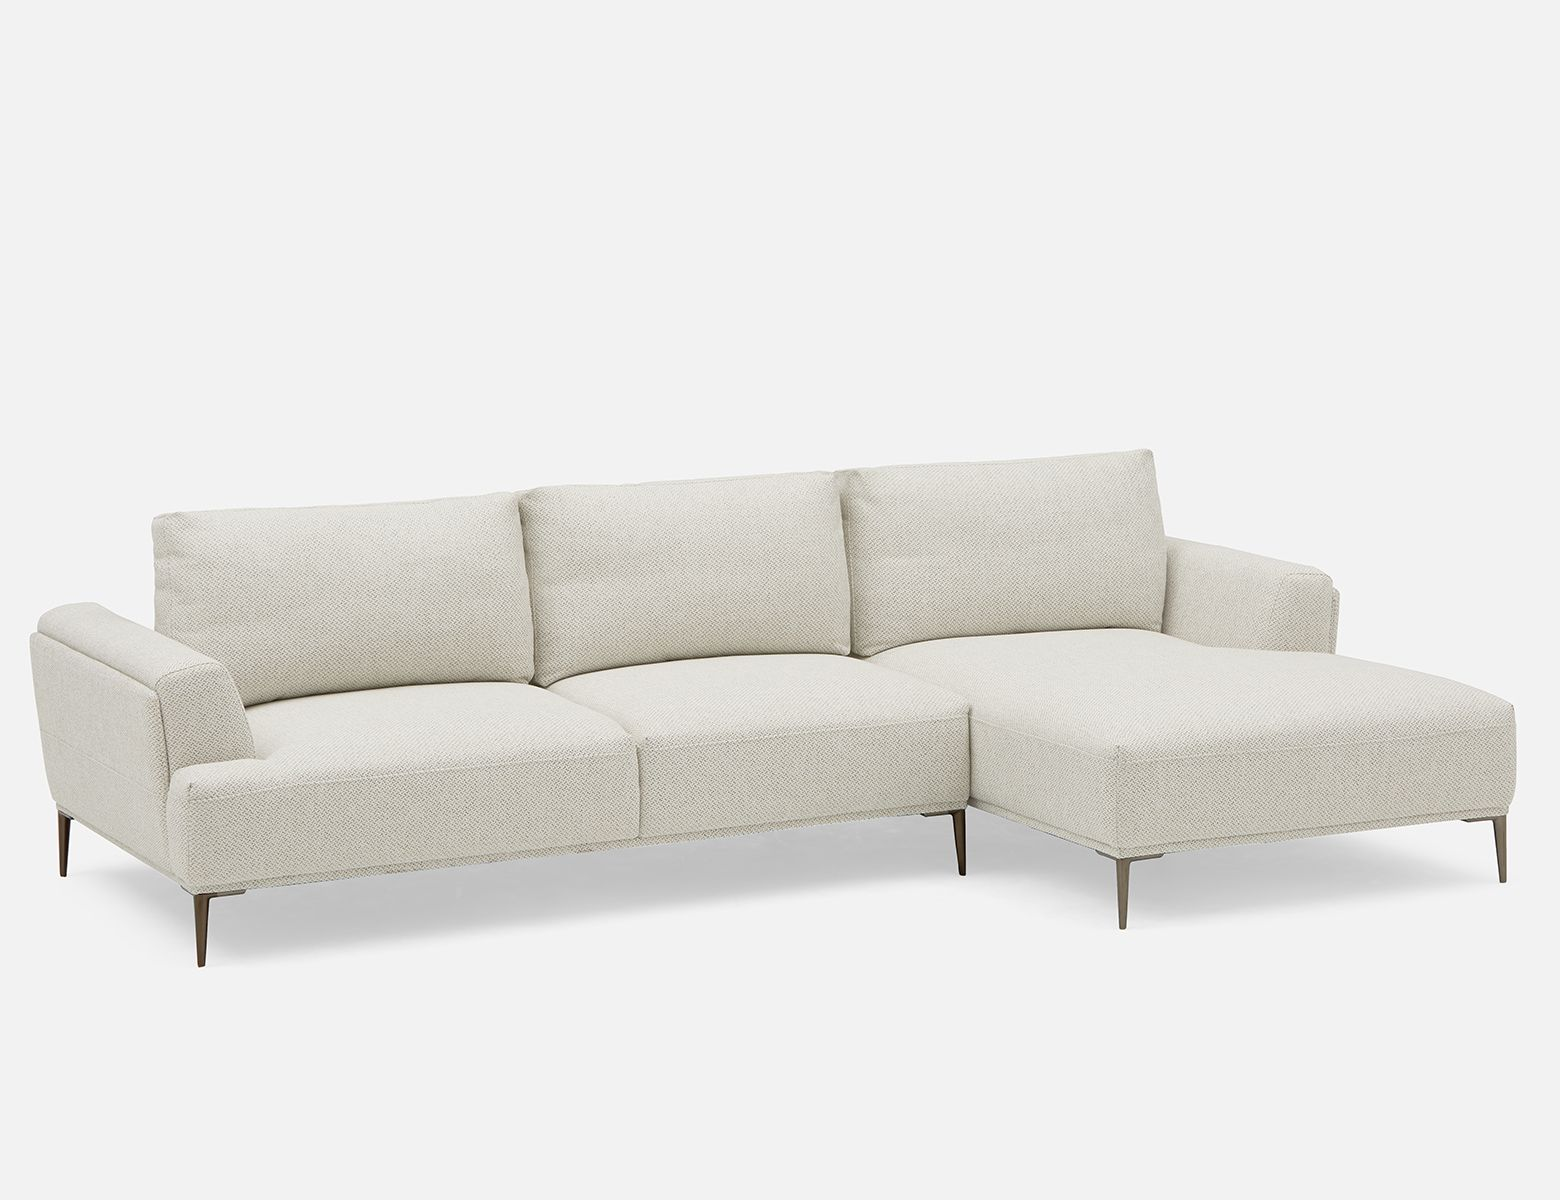 Beige Right Facing Sectional Sofa With Adjustable Backrests Structube Erin In 2020 Sectional Sofa Modern Sofa Sectional Modular Couch